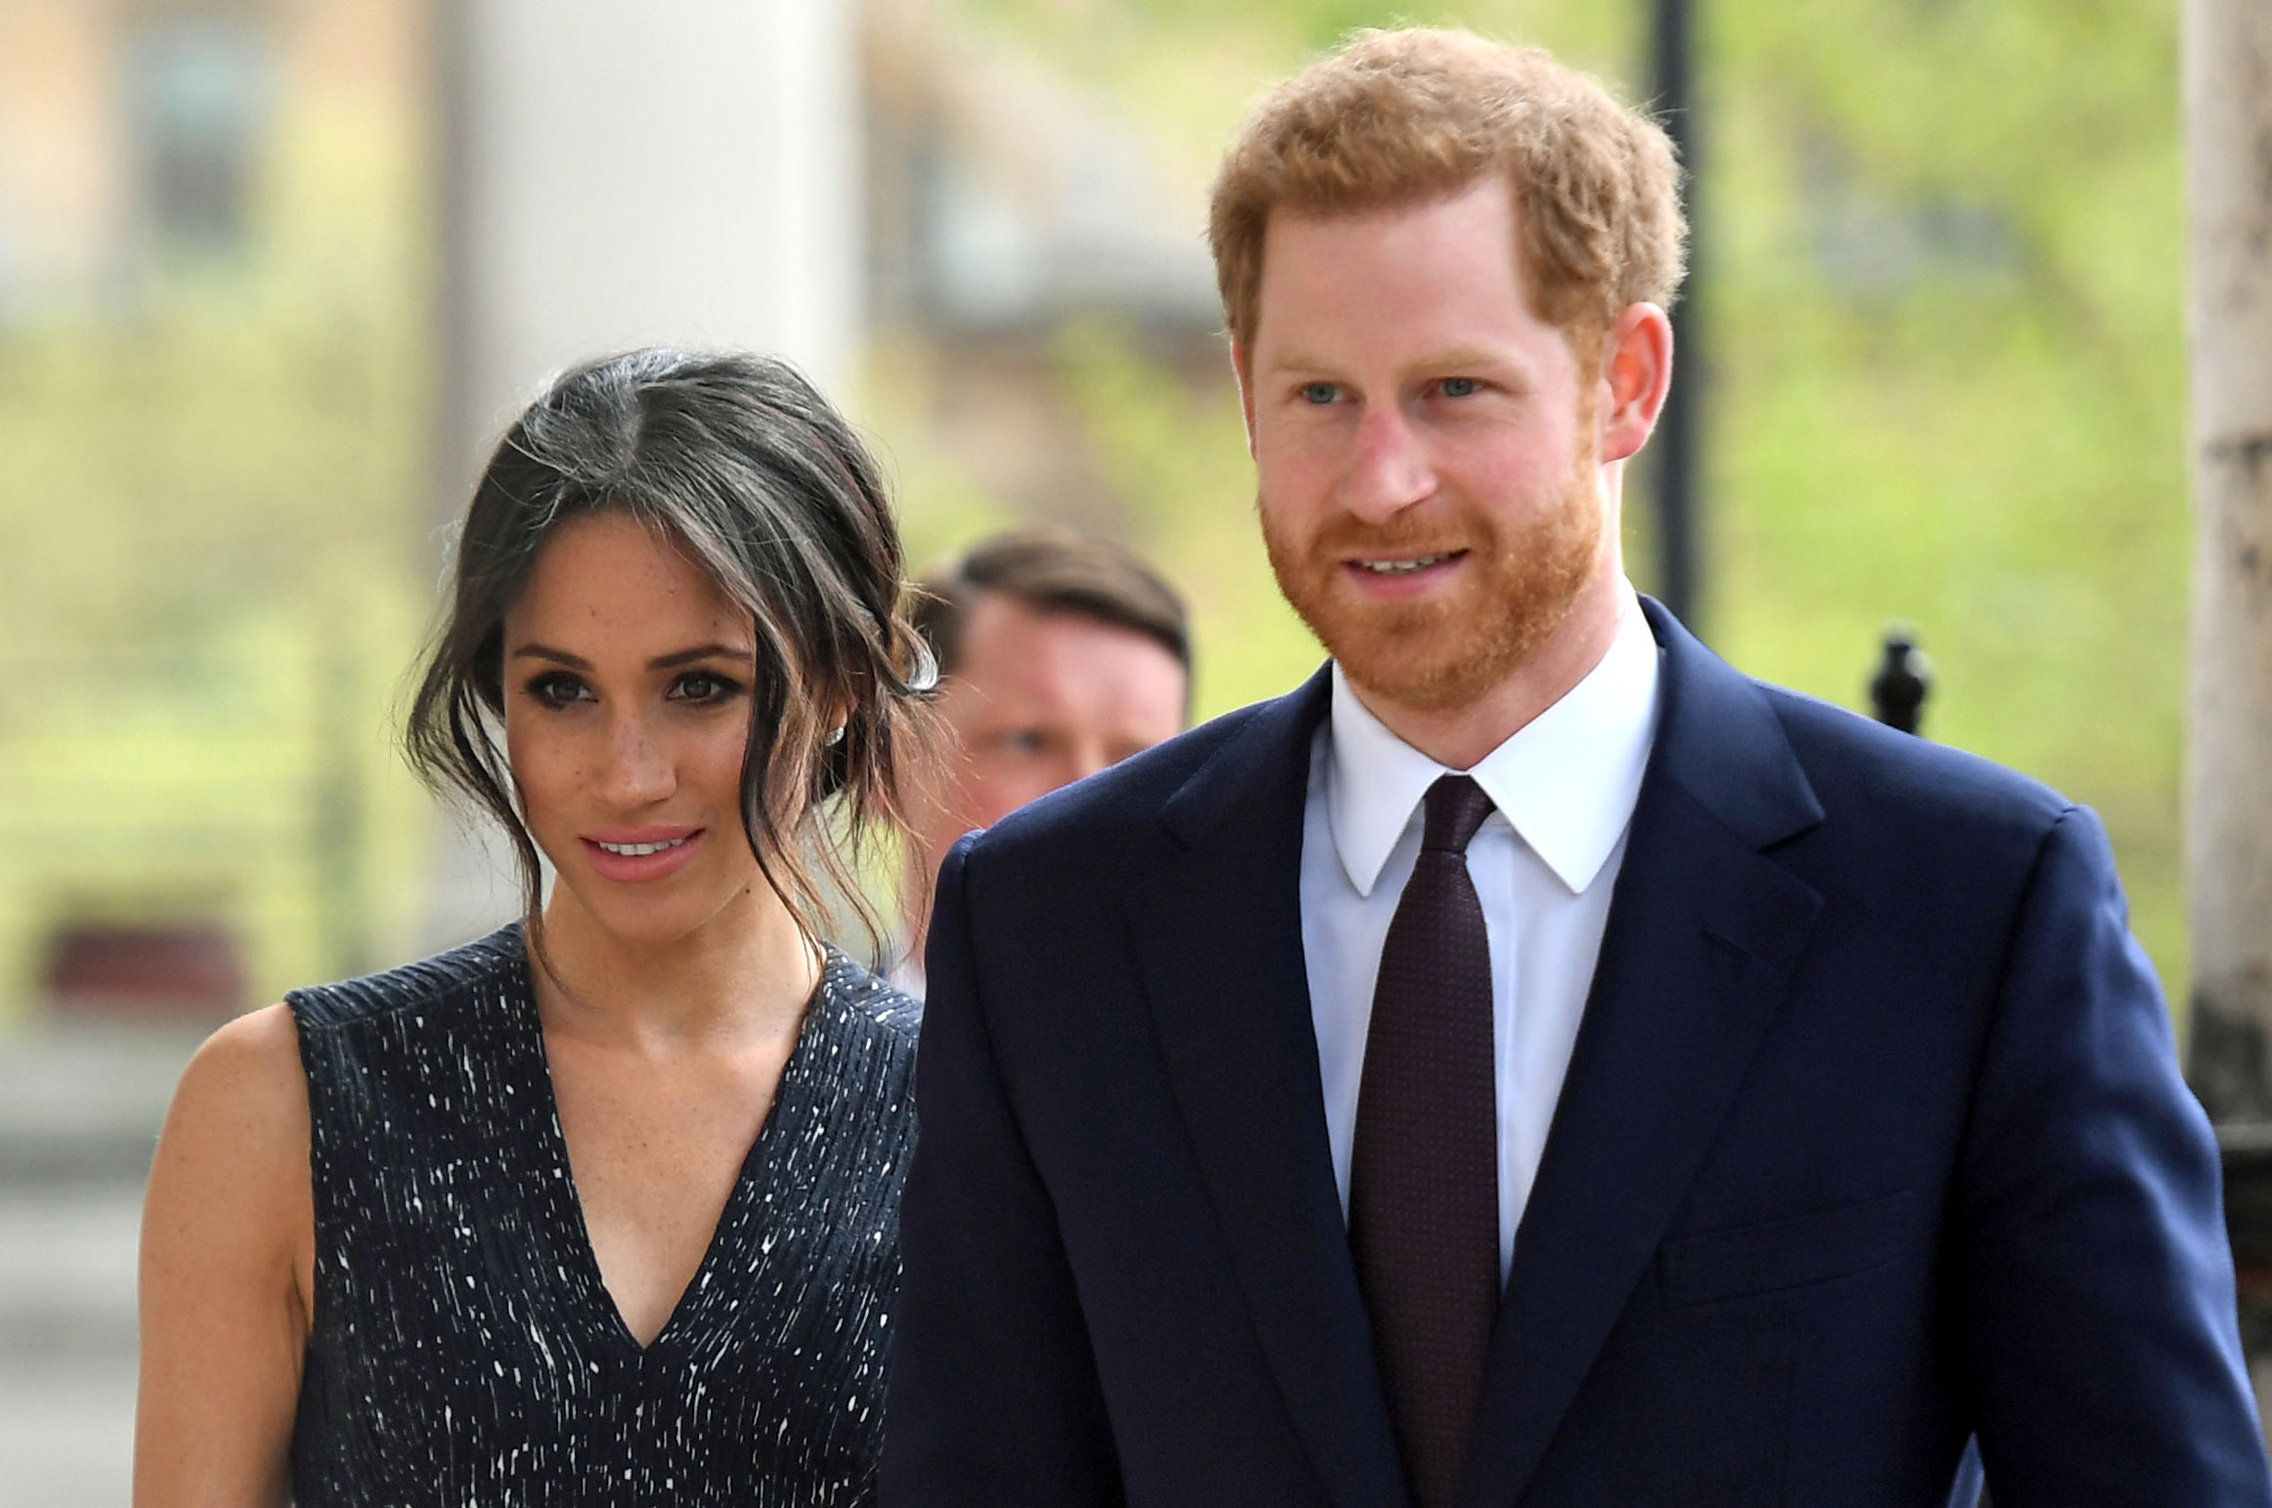 Britain's Prince Harry (R) and his US fiancee Meghan Markle arrive to attend a memorial service at St Martin-in-the-Fields in Trafalgar Square in London, on April 23, 2018, to commemorate the 25th anniversary of the murder of Stephen Lawrence. - Prince Harry will attended a memorial on Monday marking the 25th anniversary of the racist murder of black teenager Stephen Lawrence in a killing that triggered far-reaching changes to British attitudes and policing. The prince and his fiancee Meghan Markle joined Stephen's mother Doreen Lawrence, who campaigned tirelessly for justice after her son was brutally stabbed to death at a bus stop on April 22, 1993. (Photo by Victoria Jones / POOL / AFP)        (Photo credit should read VICTORIA JONES/AFP/Getty Images)